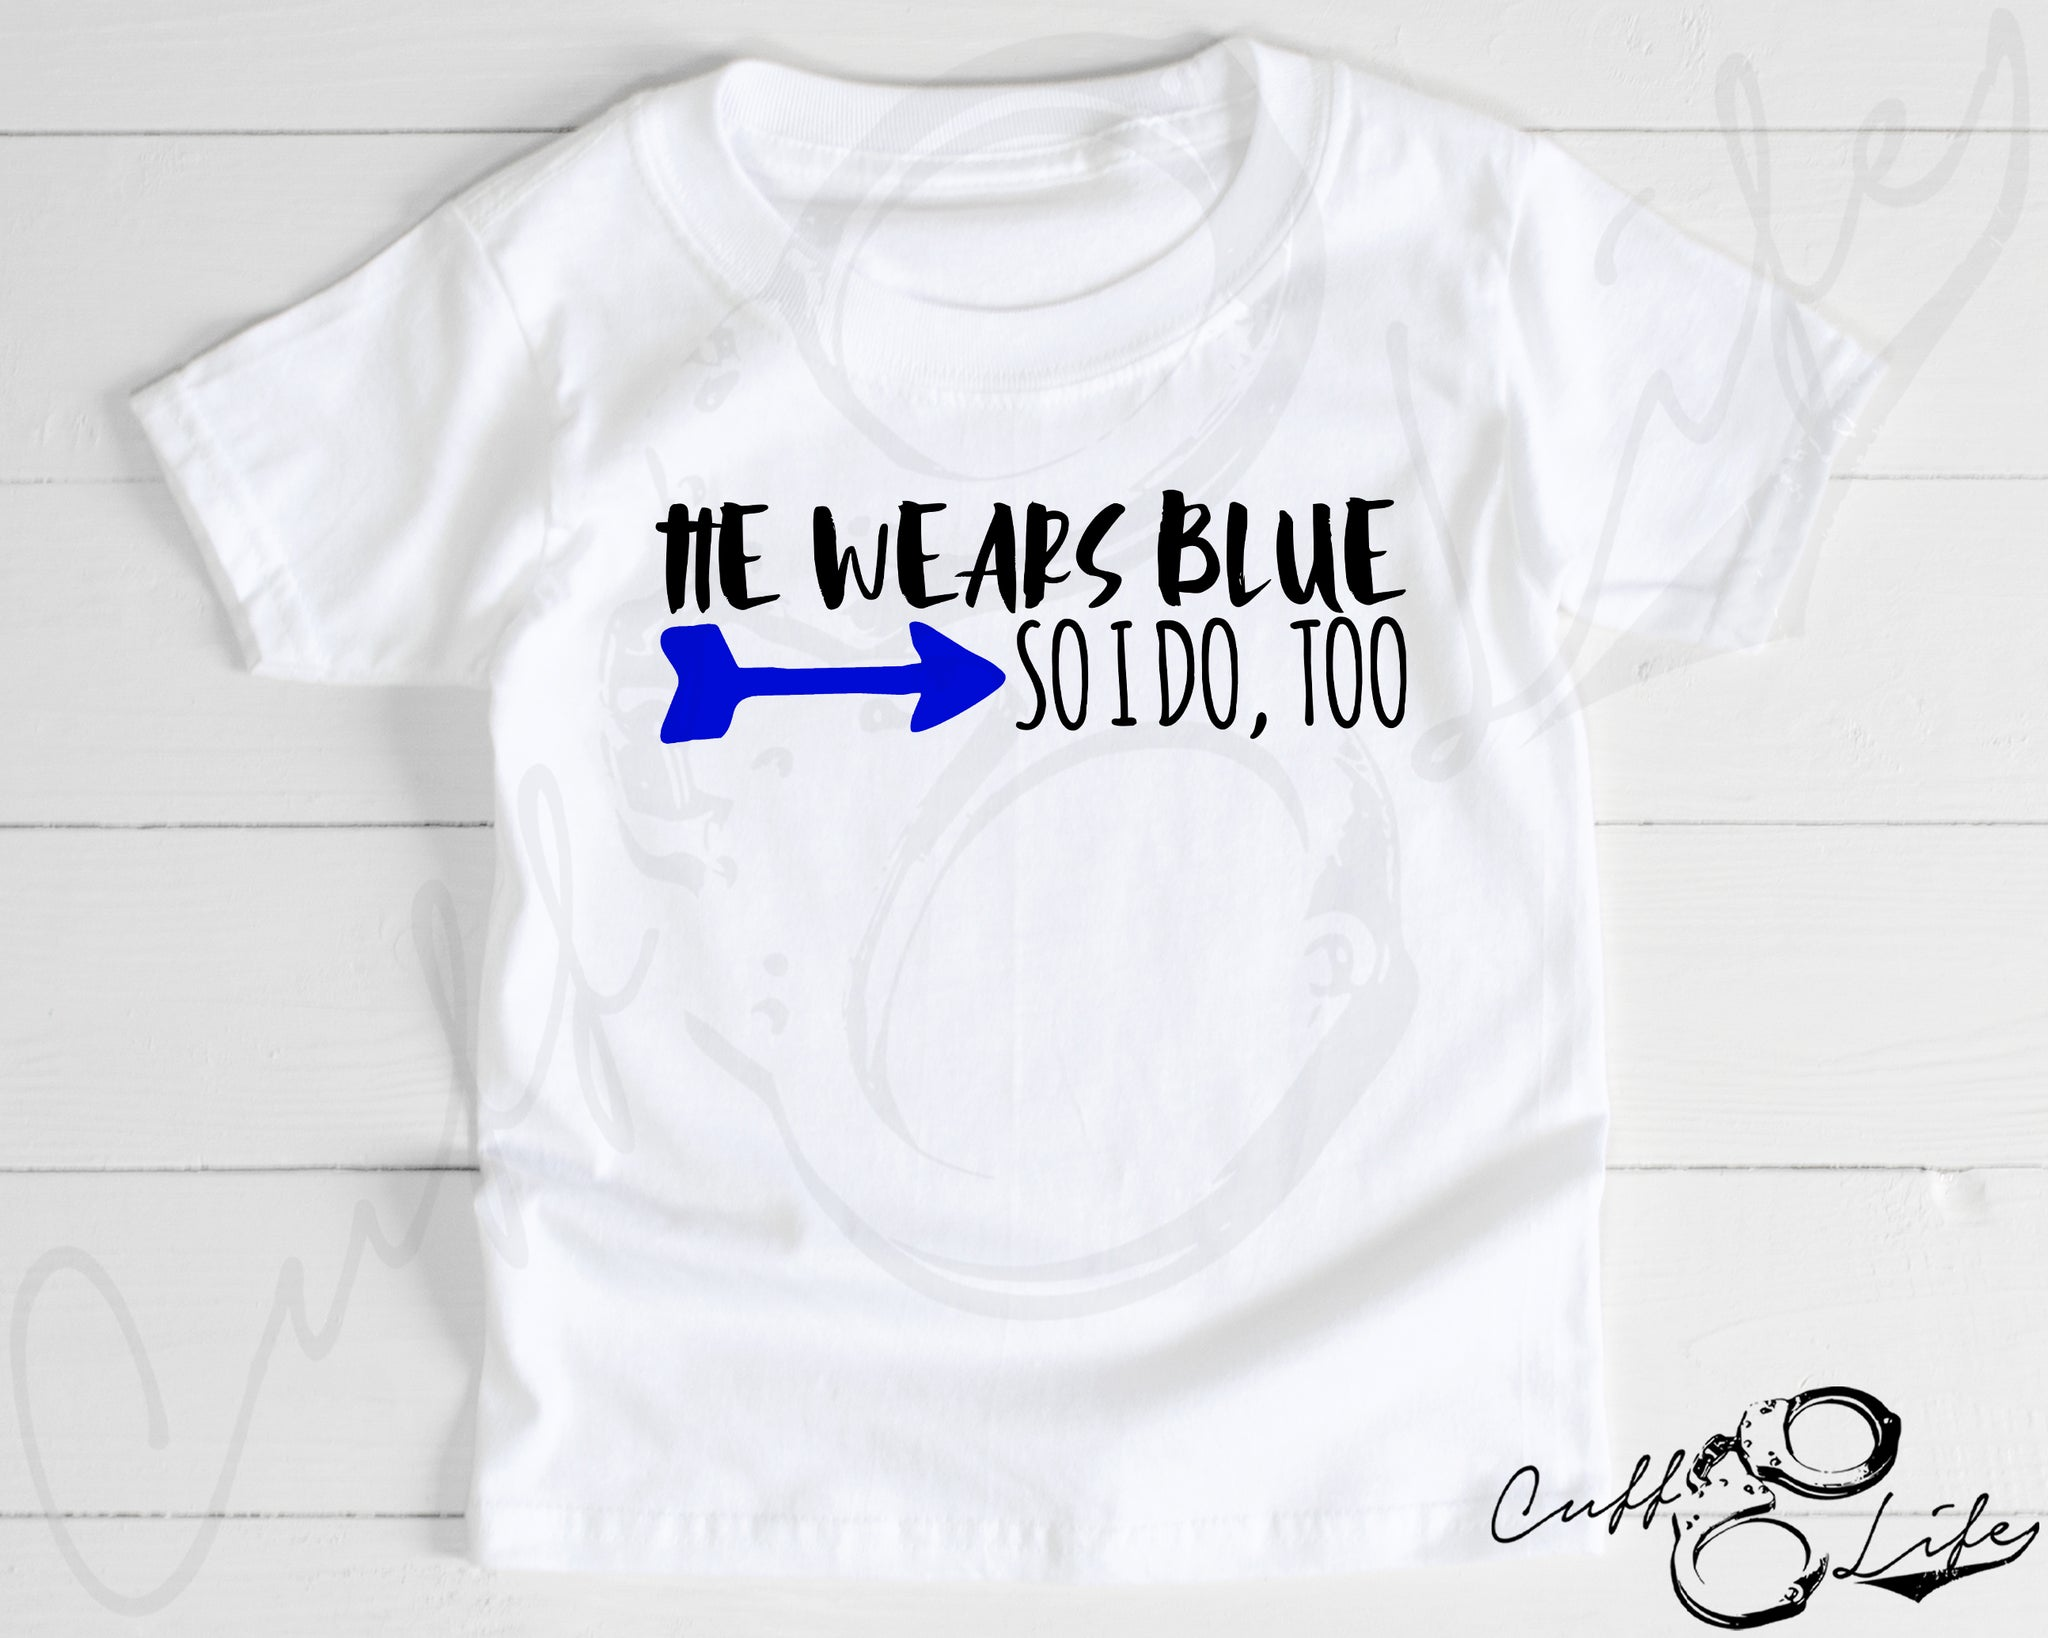 He Wears Blue © - Toddler/Youth T-Shirt